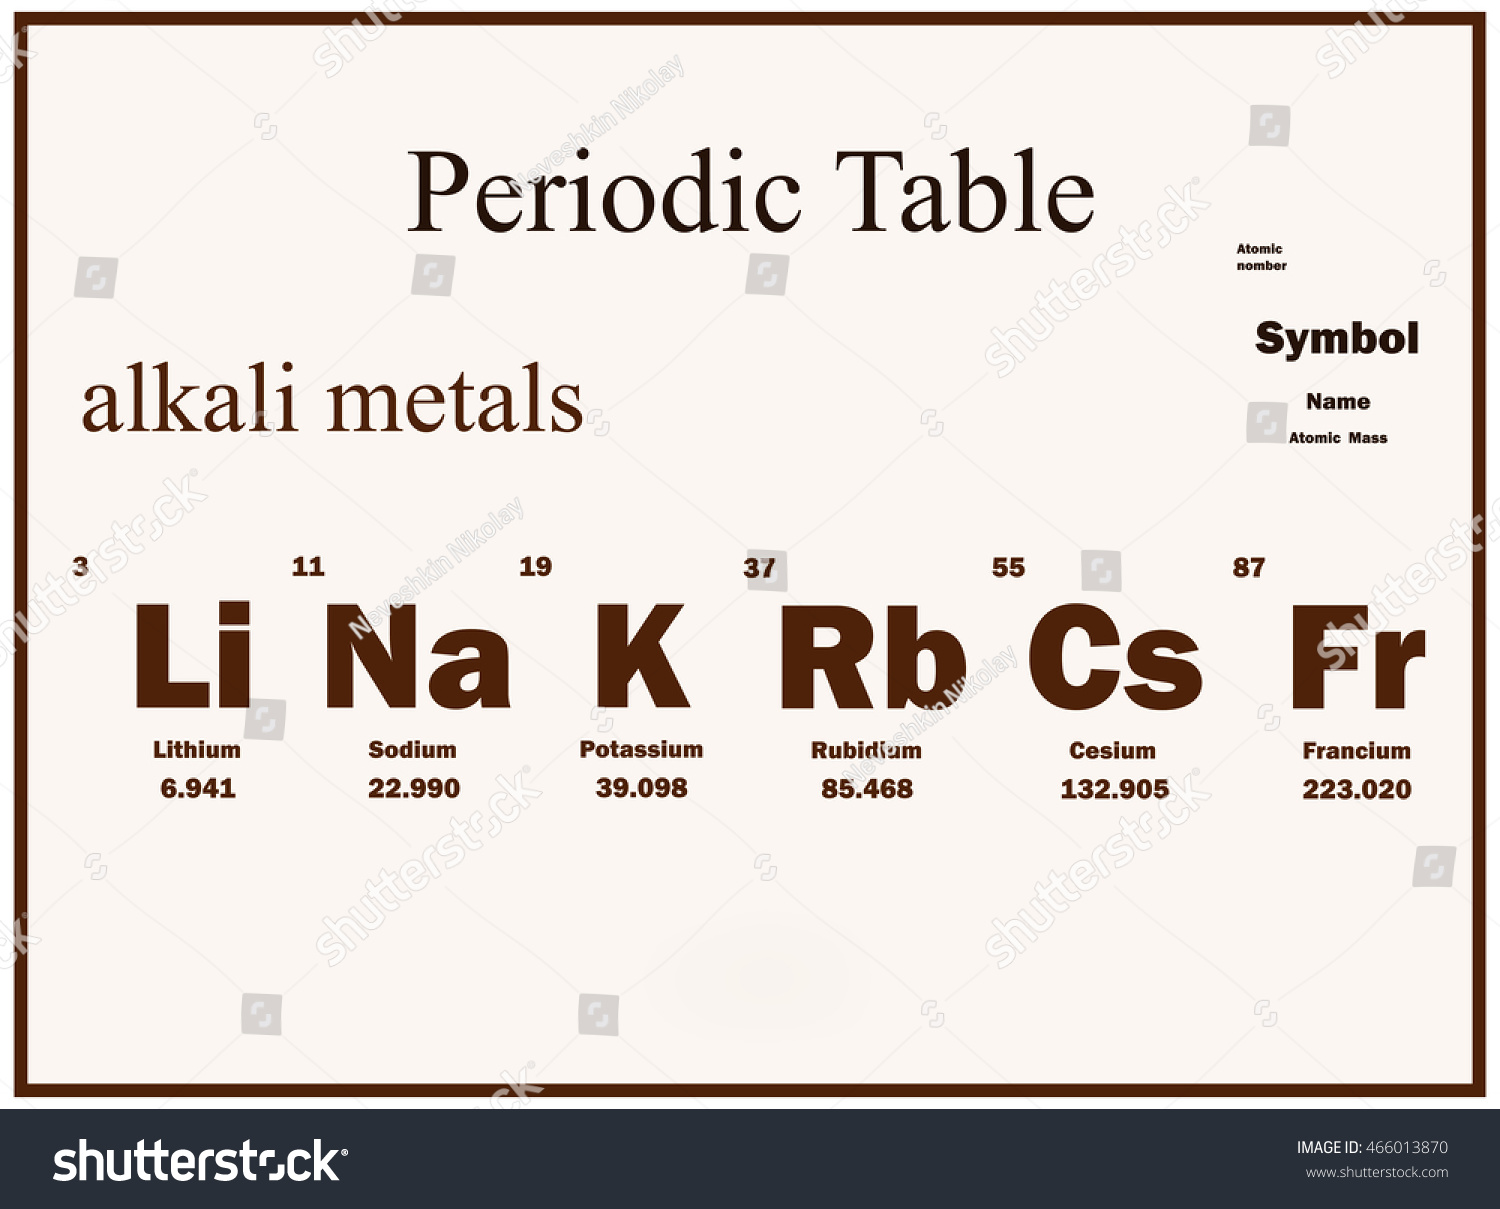 Periodic table 85 gallery periodic table images periodic table jeopardy game gallery periodic table images periodic table jeopardy game images periodic table images gamestrikefo Gallery